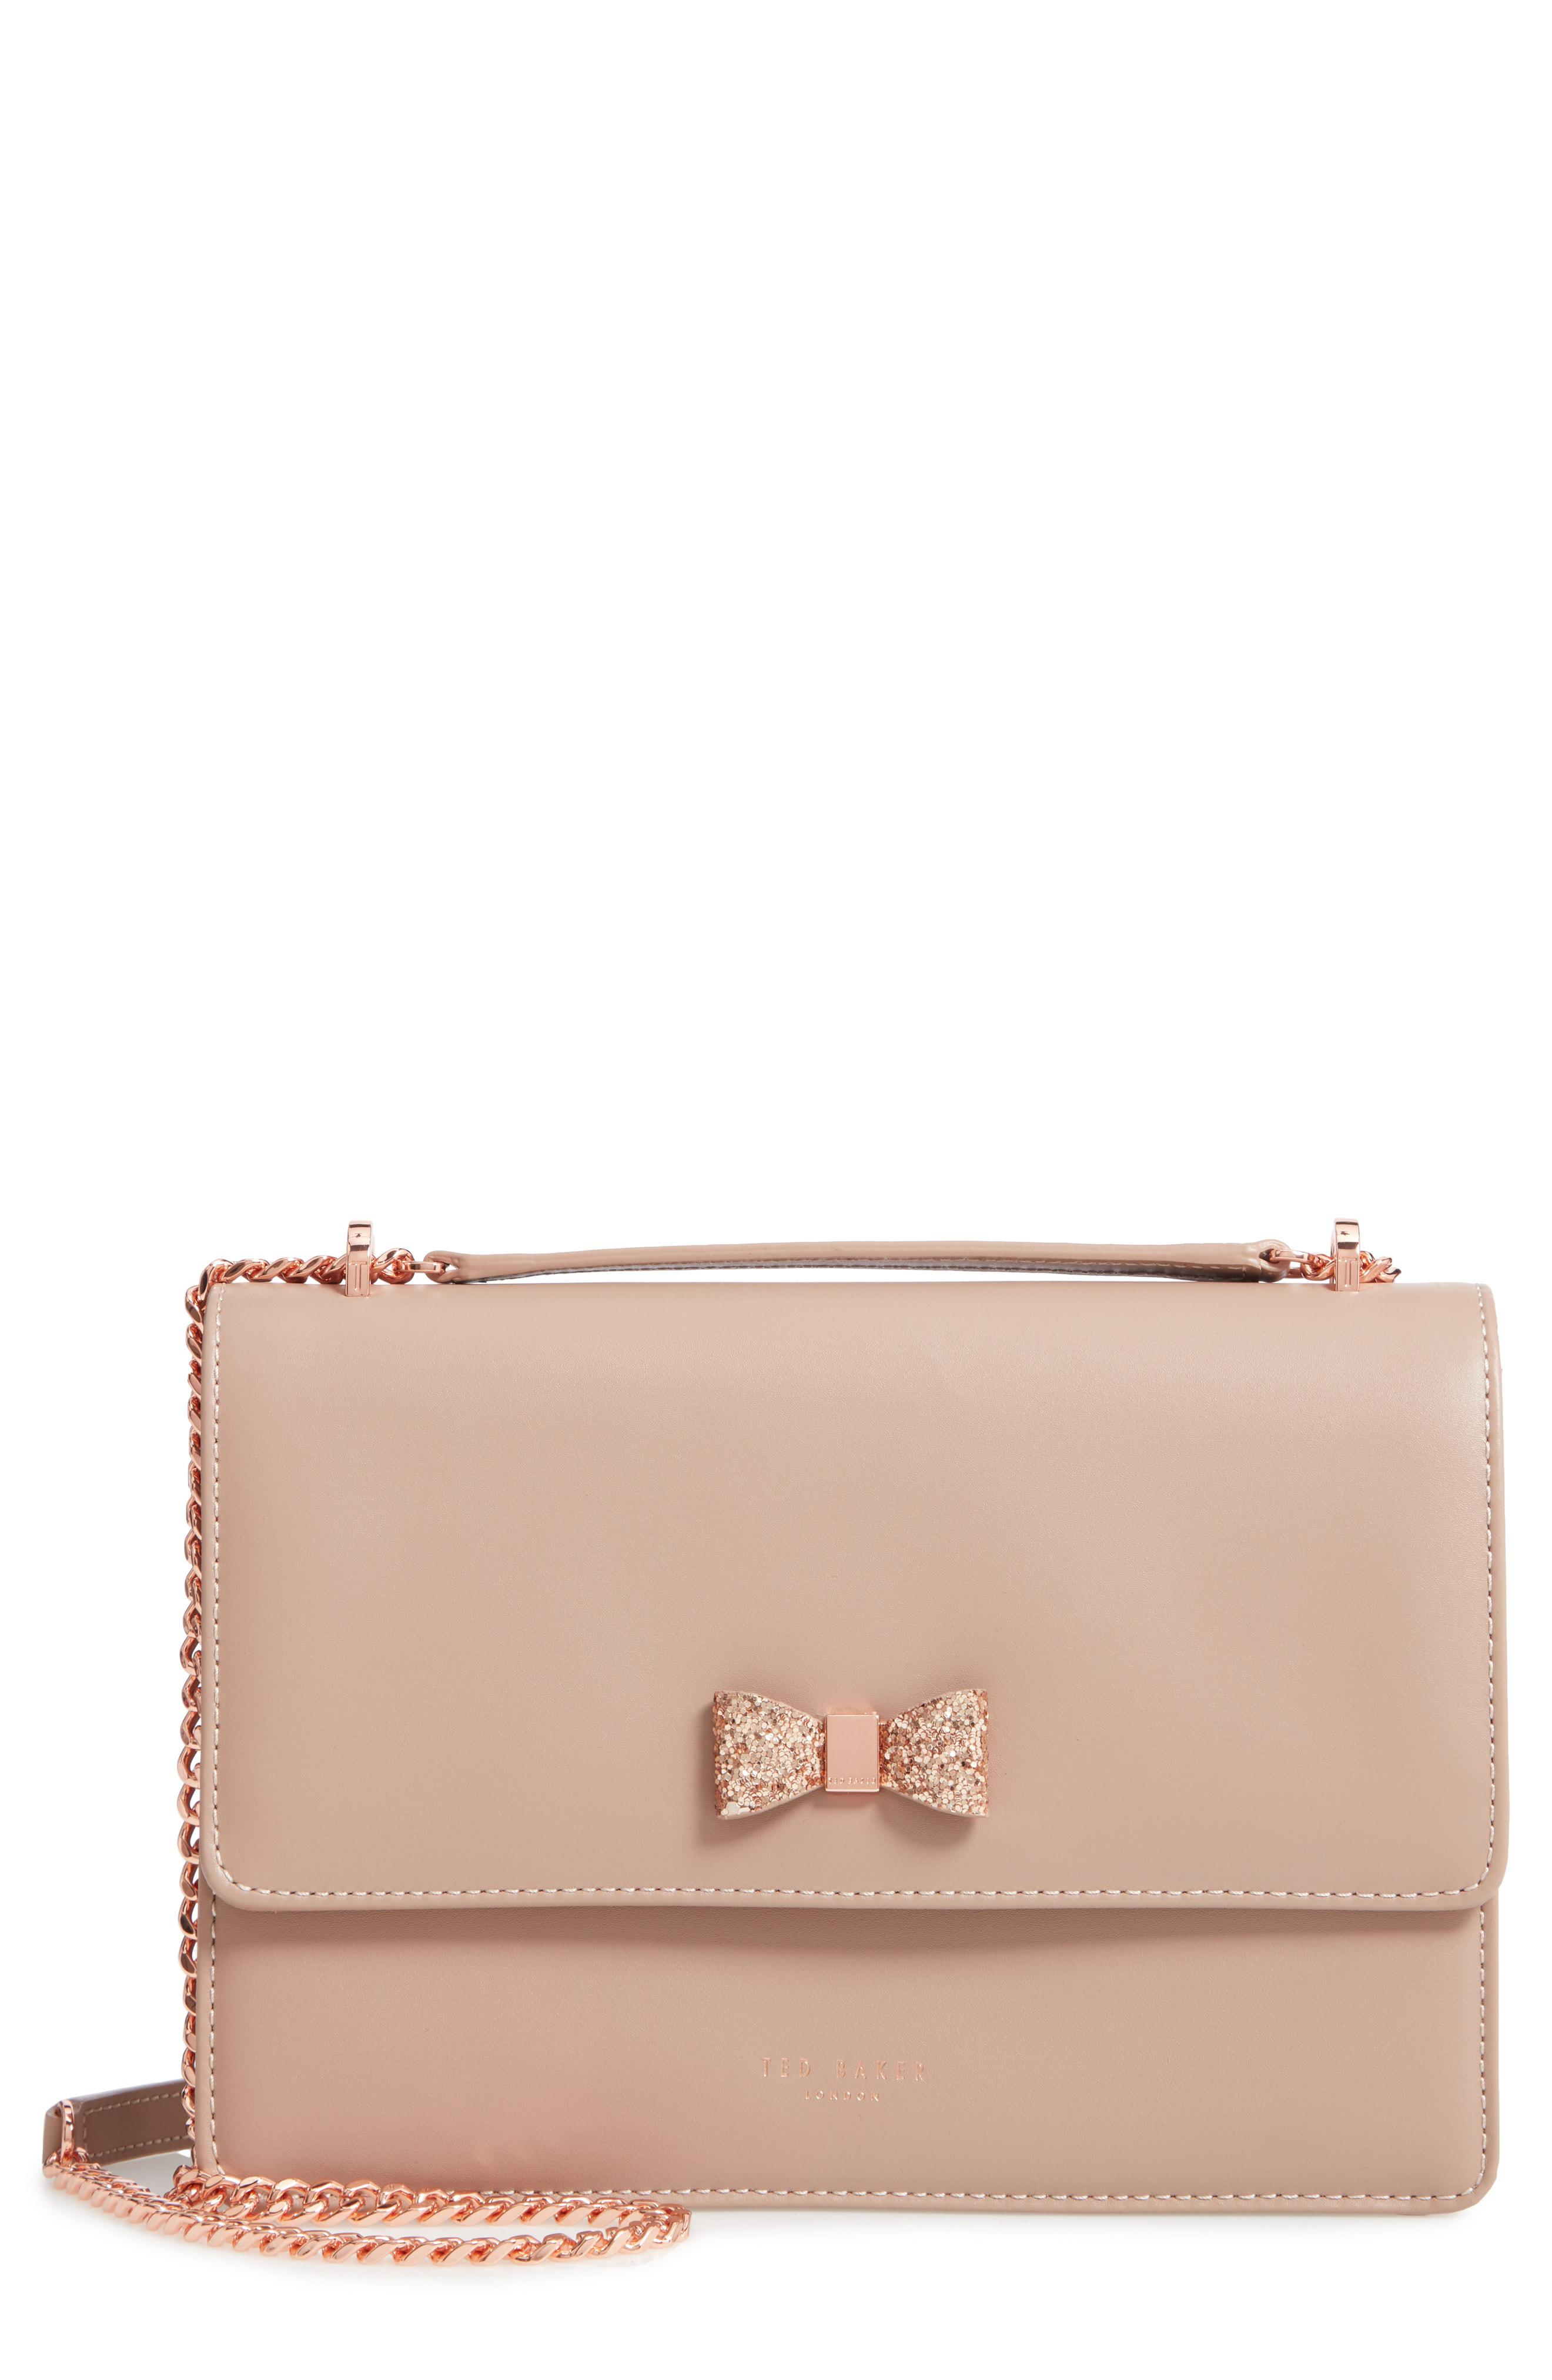 319fab030 Lyst - Ted Baker Lilyiah Bow Convertible Crossbody Bag in Natural